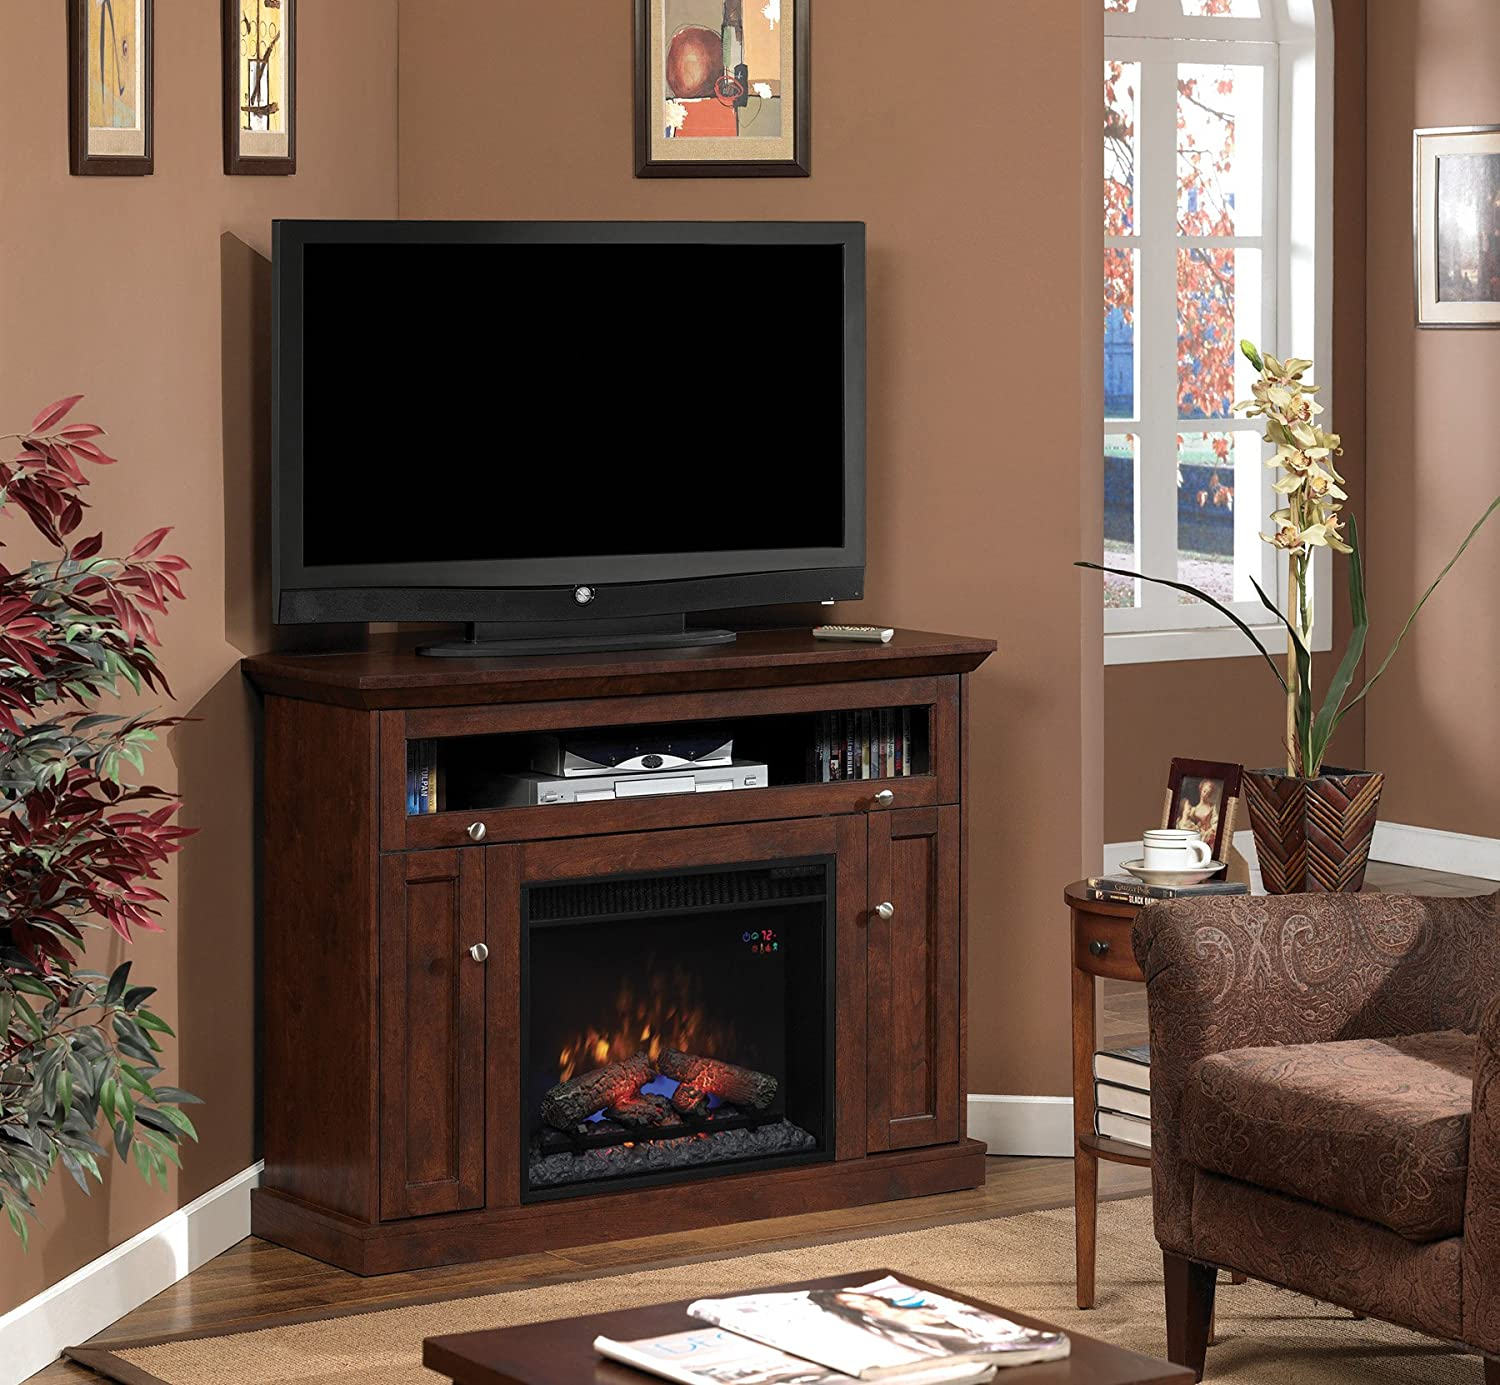 Amazon ClassicFlame 23DE9047 PC81 Windsor TV Stand For TVs Up To 45 Antique Cherry Electric Fireplace Insert Sold Separately Kitchen Dining